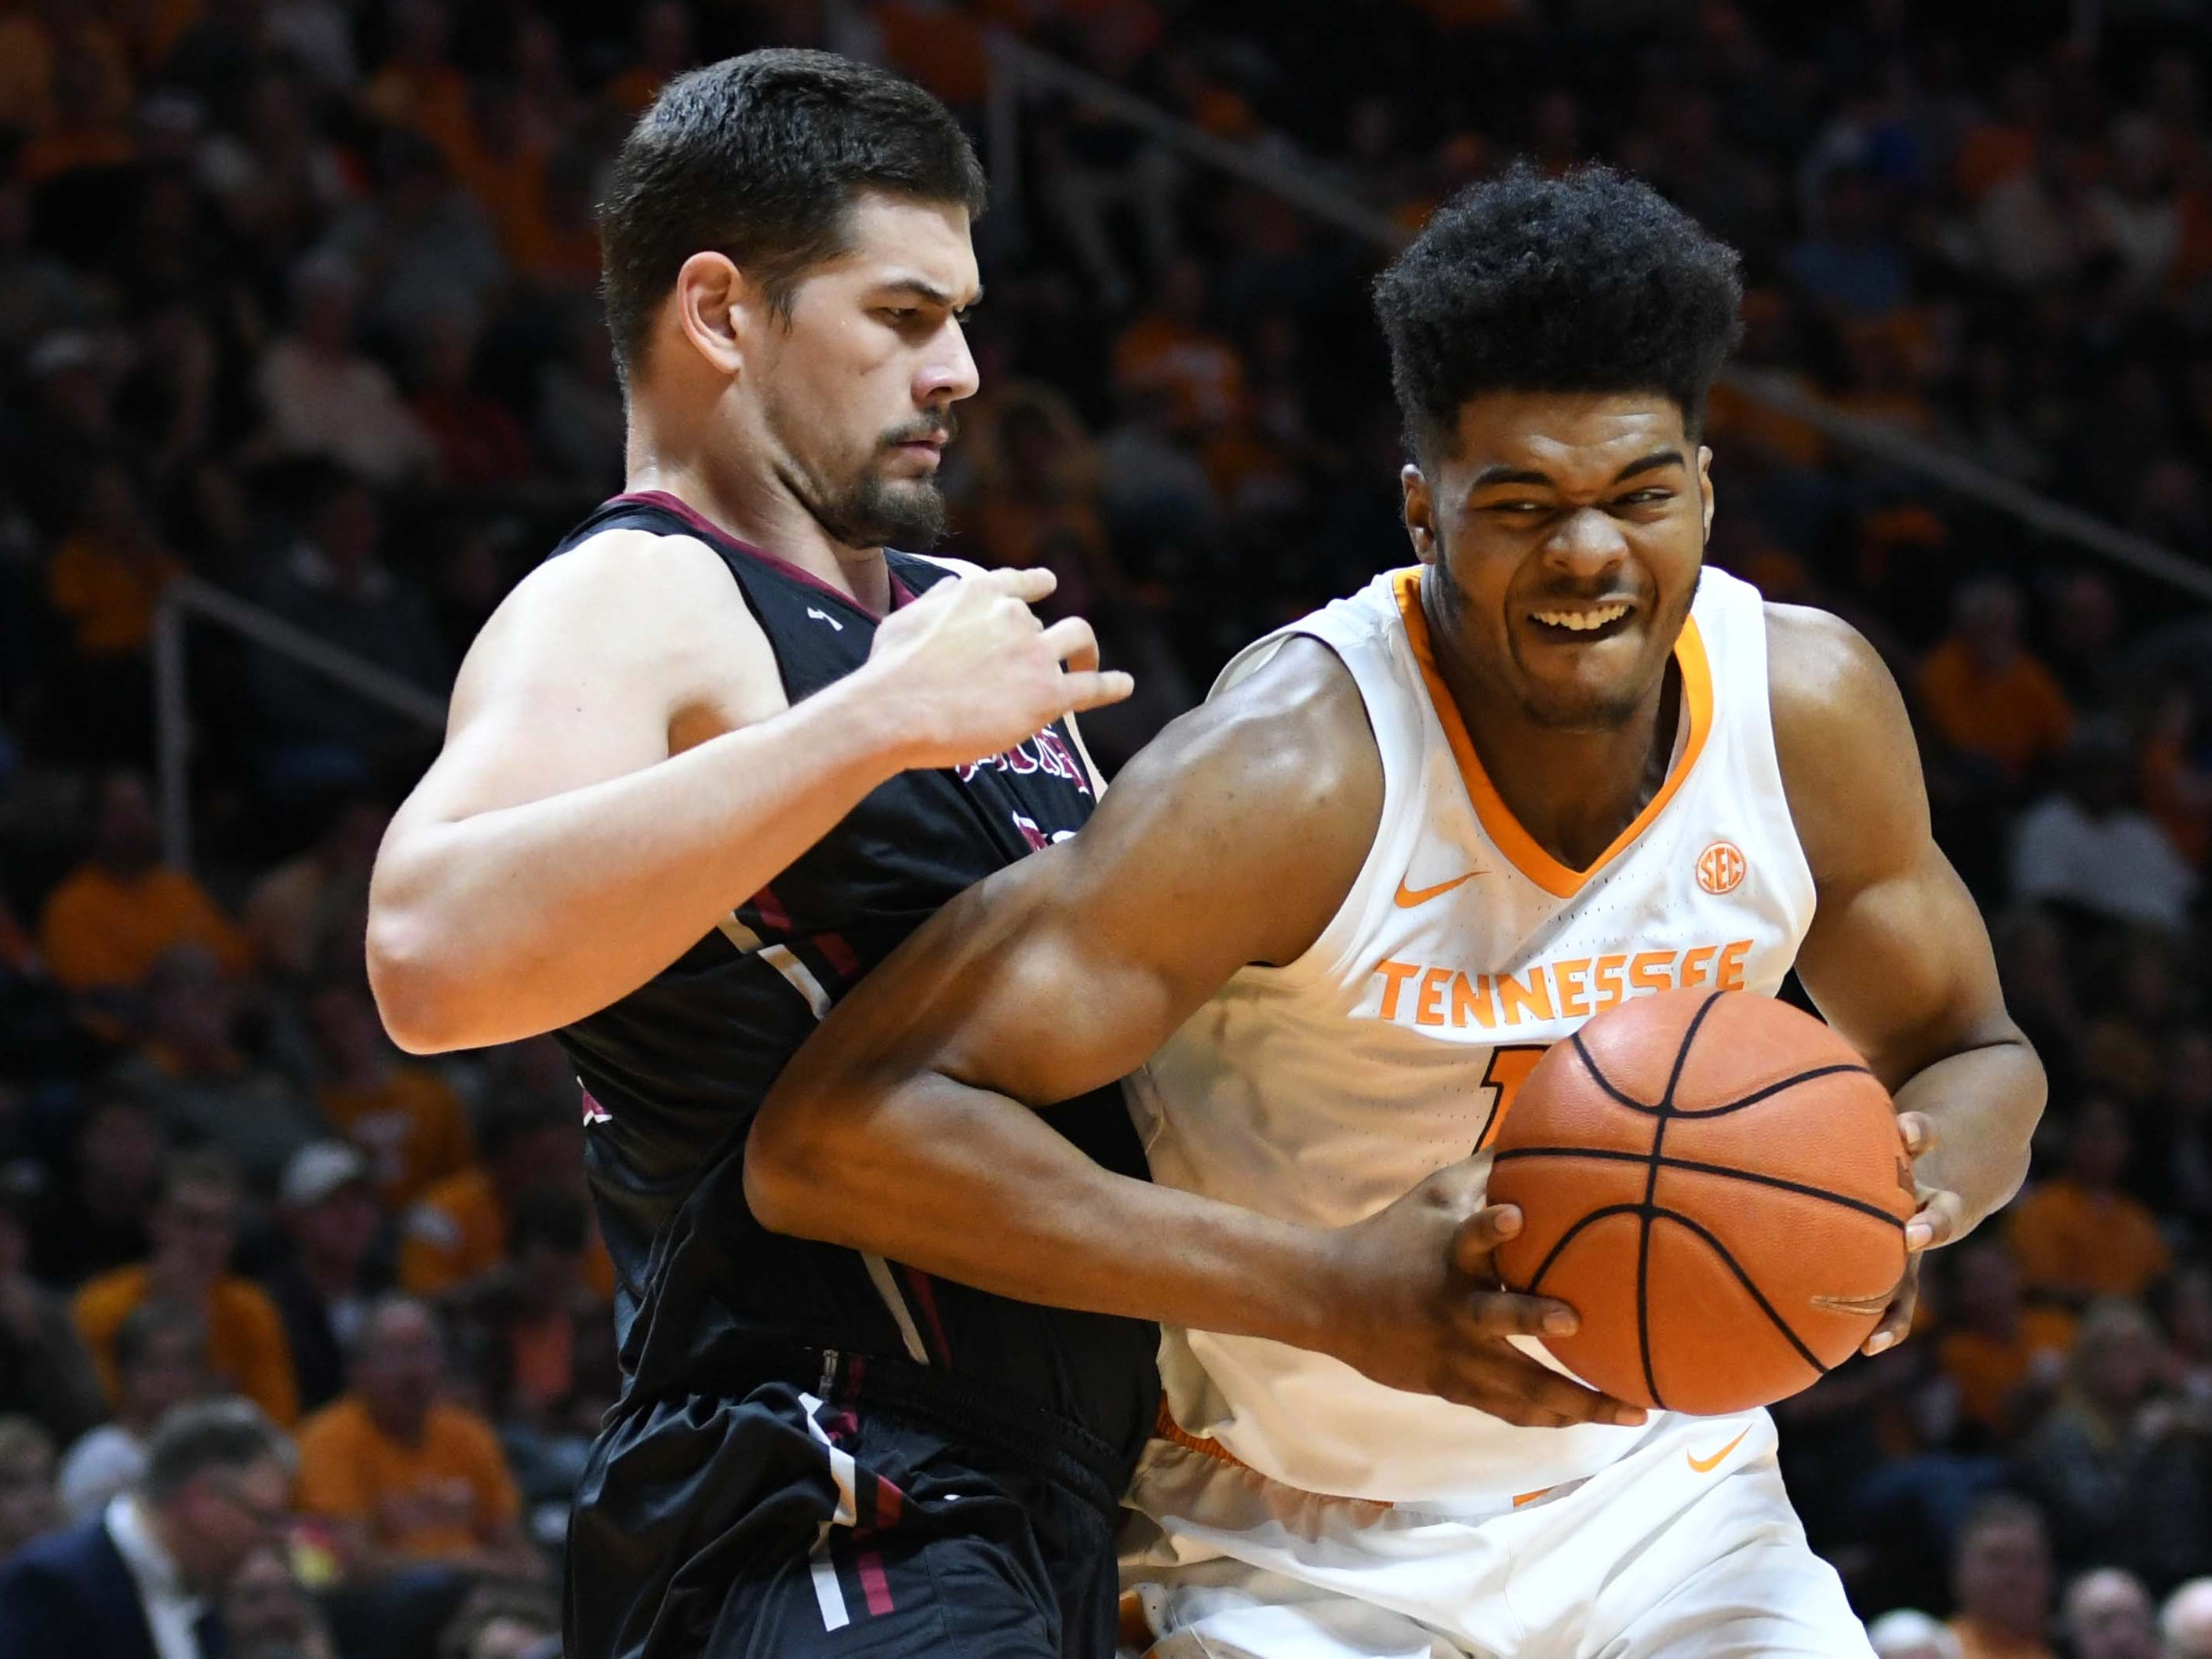 Tennessee Volunteers forward Derrick Walker (15) moves the ball against Lenoir-Rhyne Bears Filip Leskovar (11) during the second half at Thompson-Boling Arena.